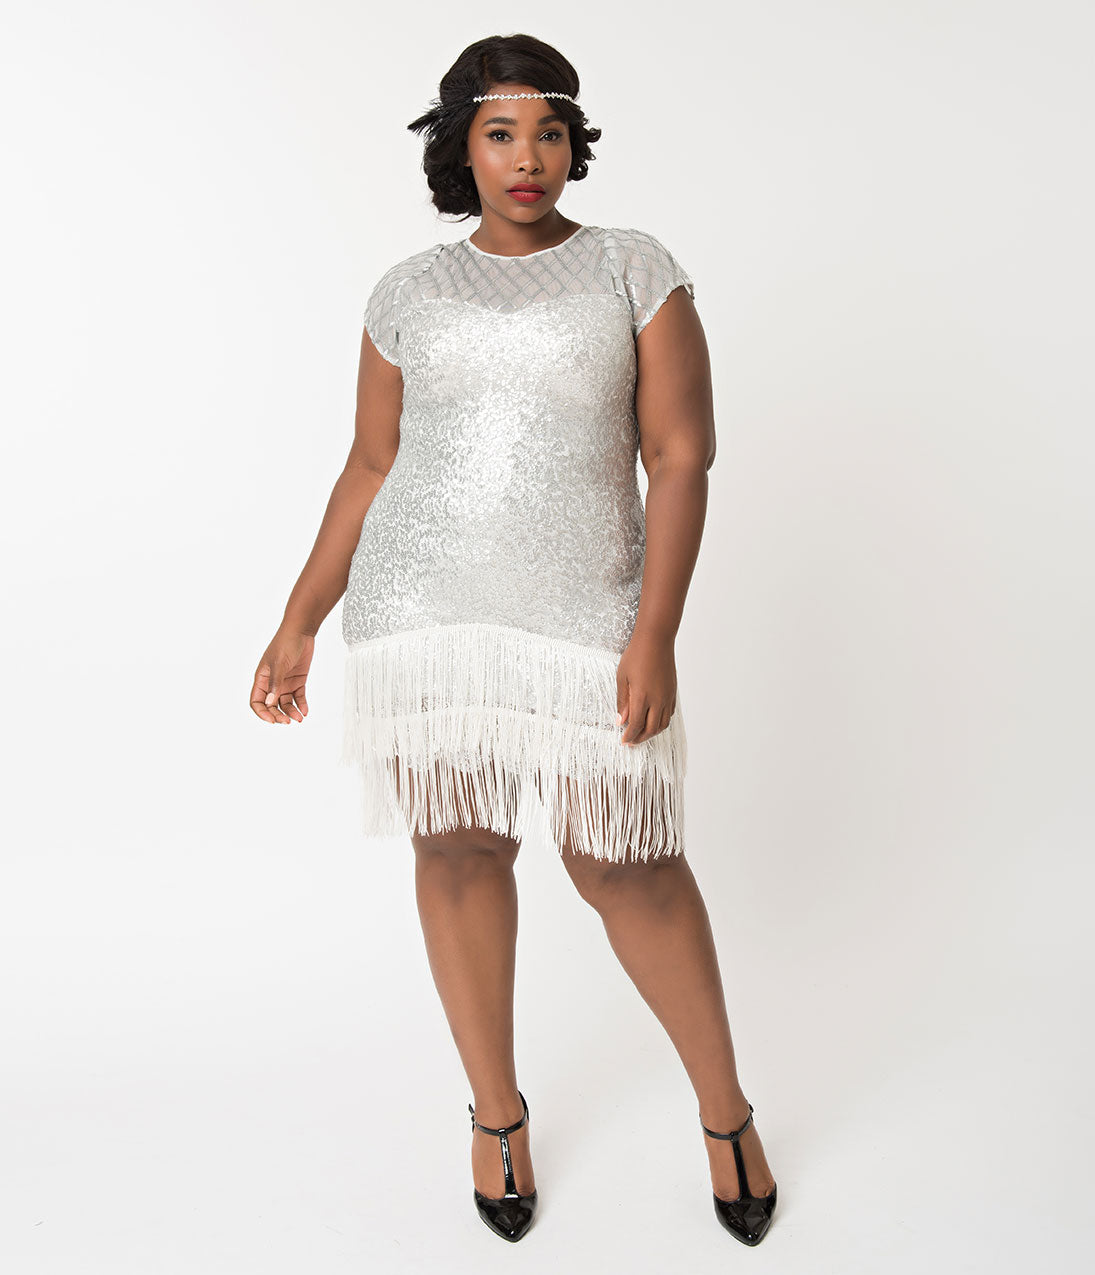 Downton Abbey Inspired Dresses Unique Vintage Plus Size 1920S Antique Silver Sequin Fringe Del Mar Flapper Dress $58.00 AT vintagedancer.com